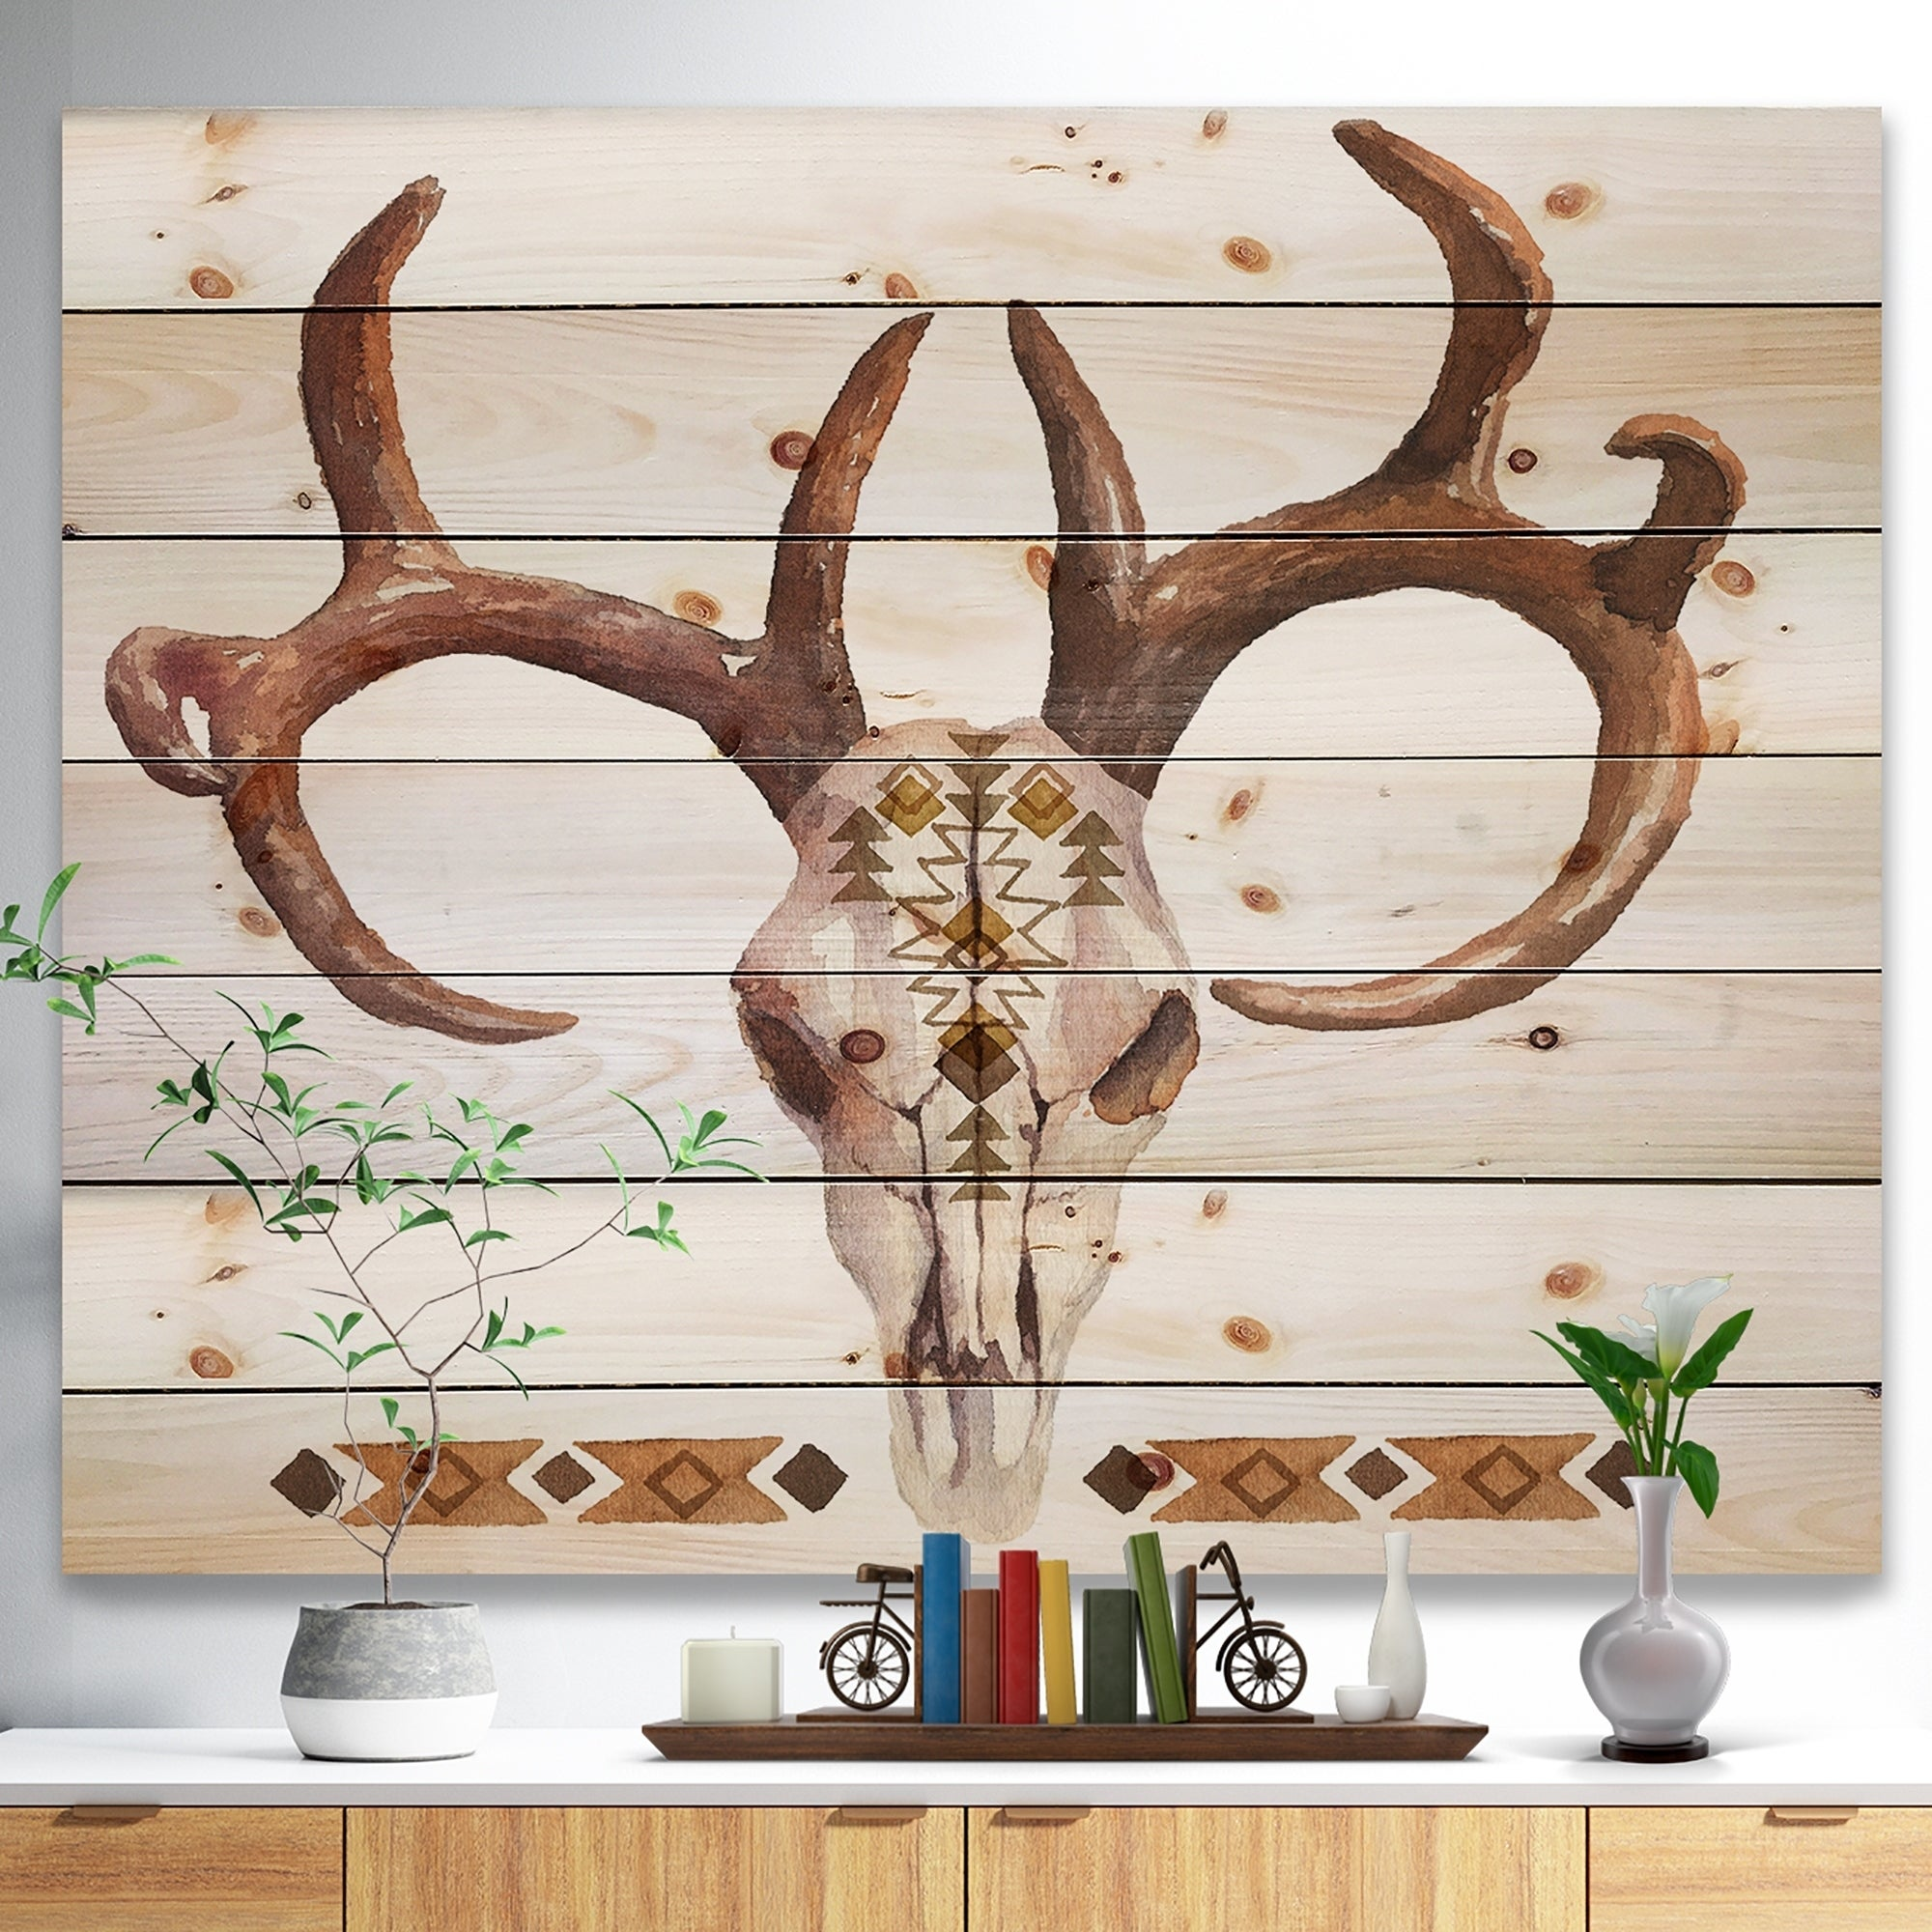 Shop Designart U0027Real Deer Antler Sketchu0027 Farmhouse Animal Painting Print On  Natural Pine Wood   White   On Sale   Free Shipping Today   Overstock    23107671